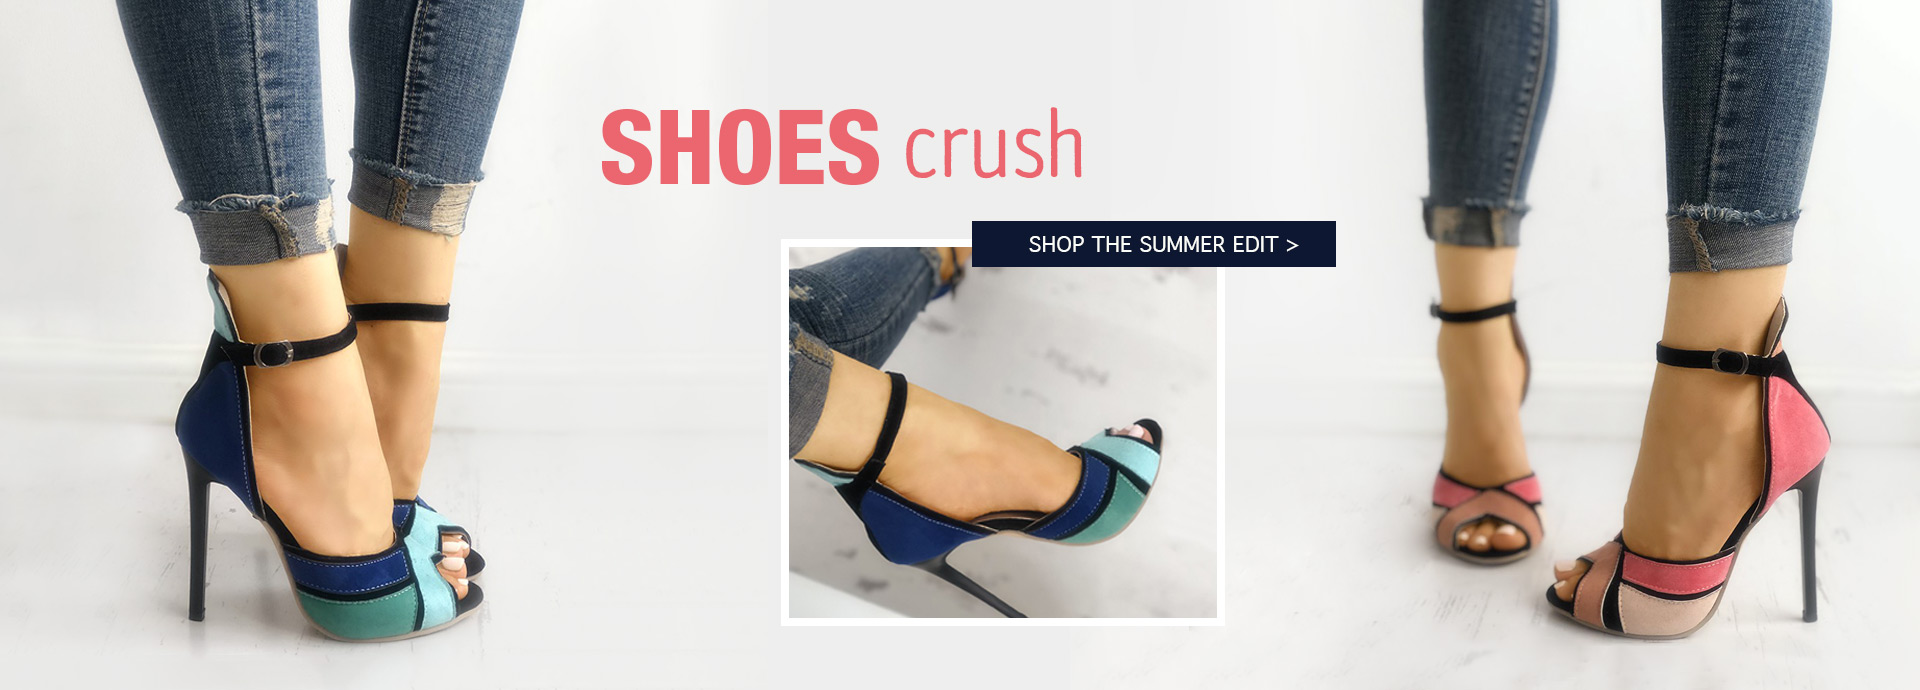 Shoes crush